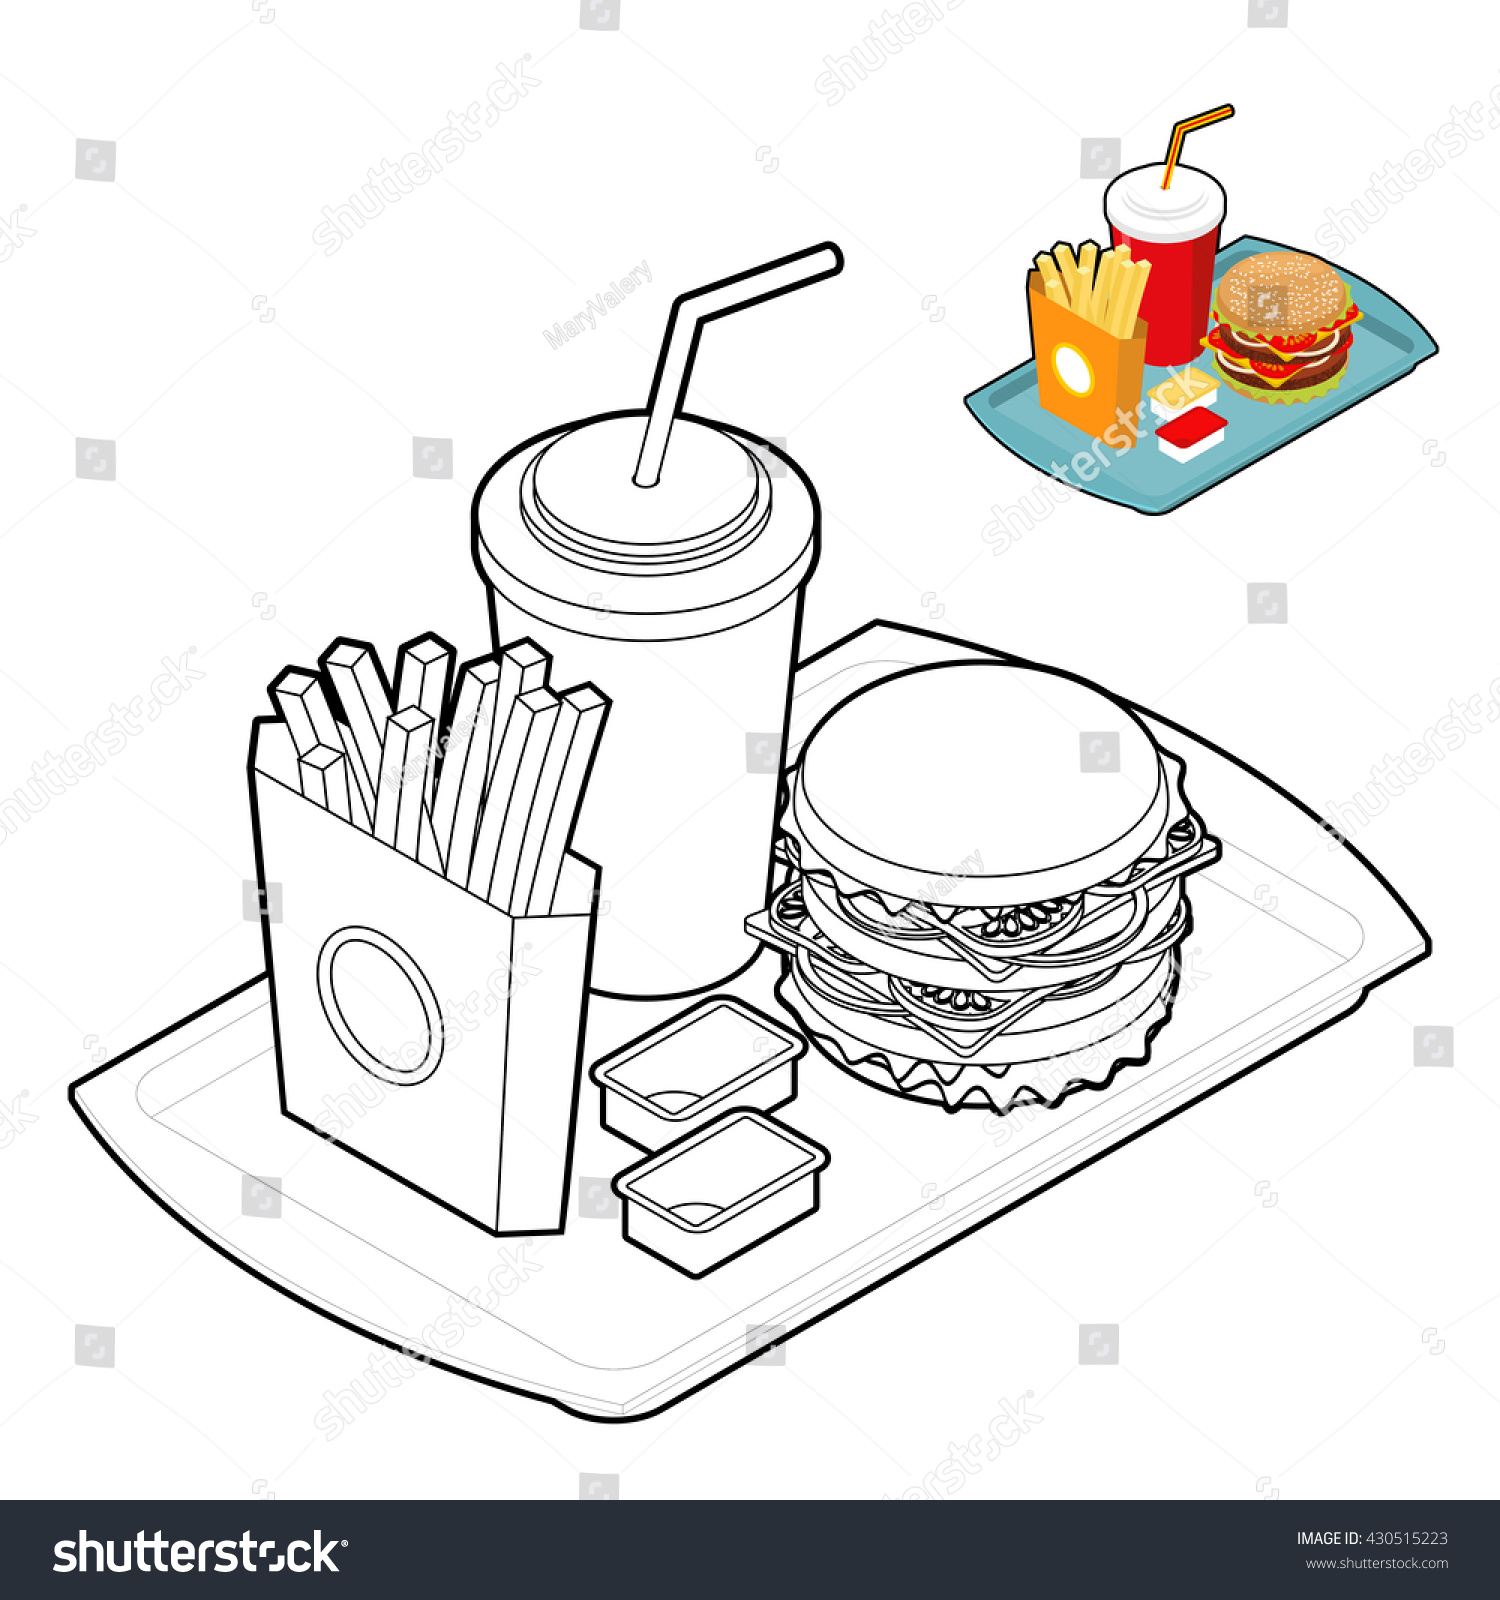 Fast Food Coloring Book Food Linear Stock Vector